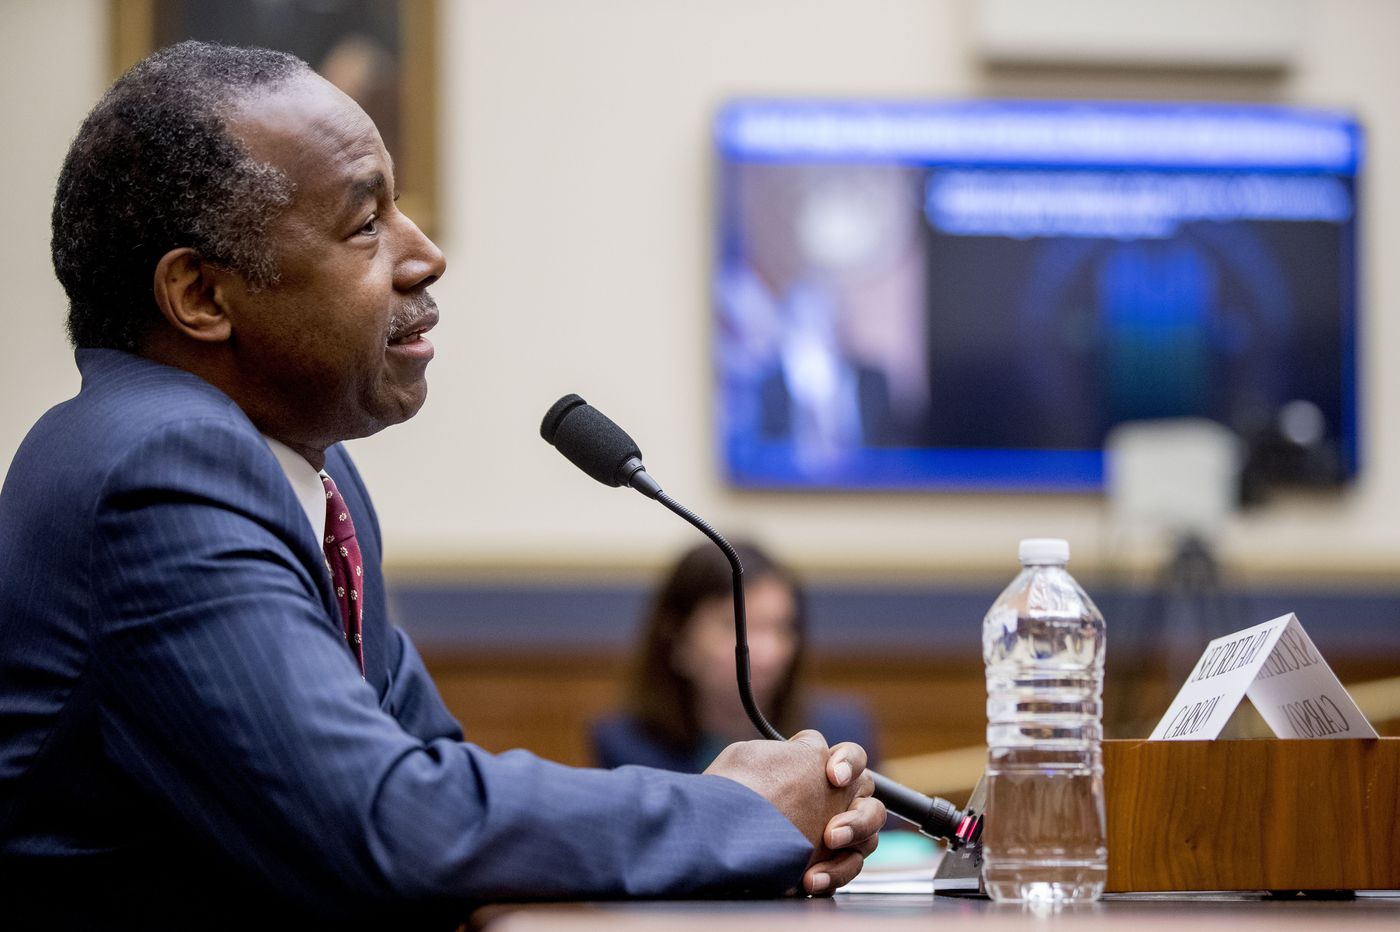 Ben Carson didn't know about REOs, but he's not alone in acronym confusion | Angry Grammarian